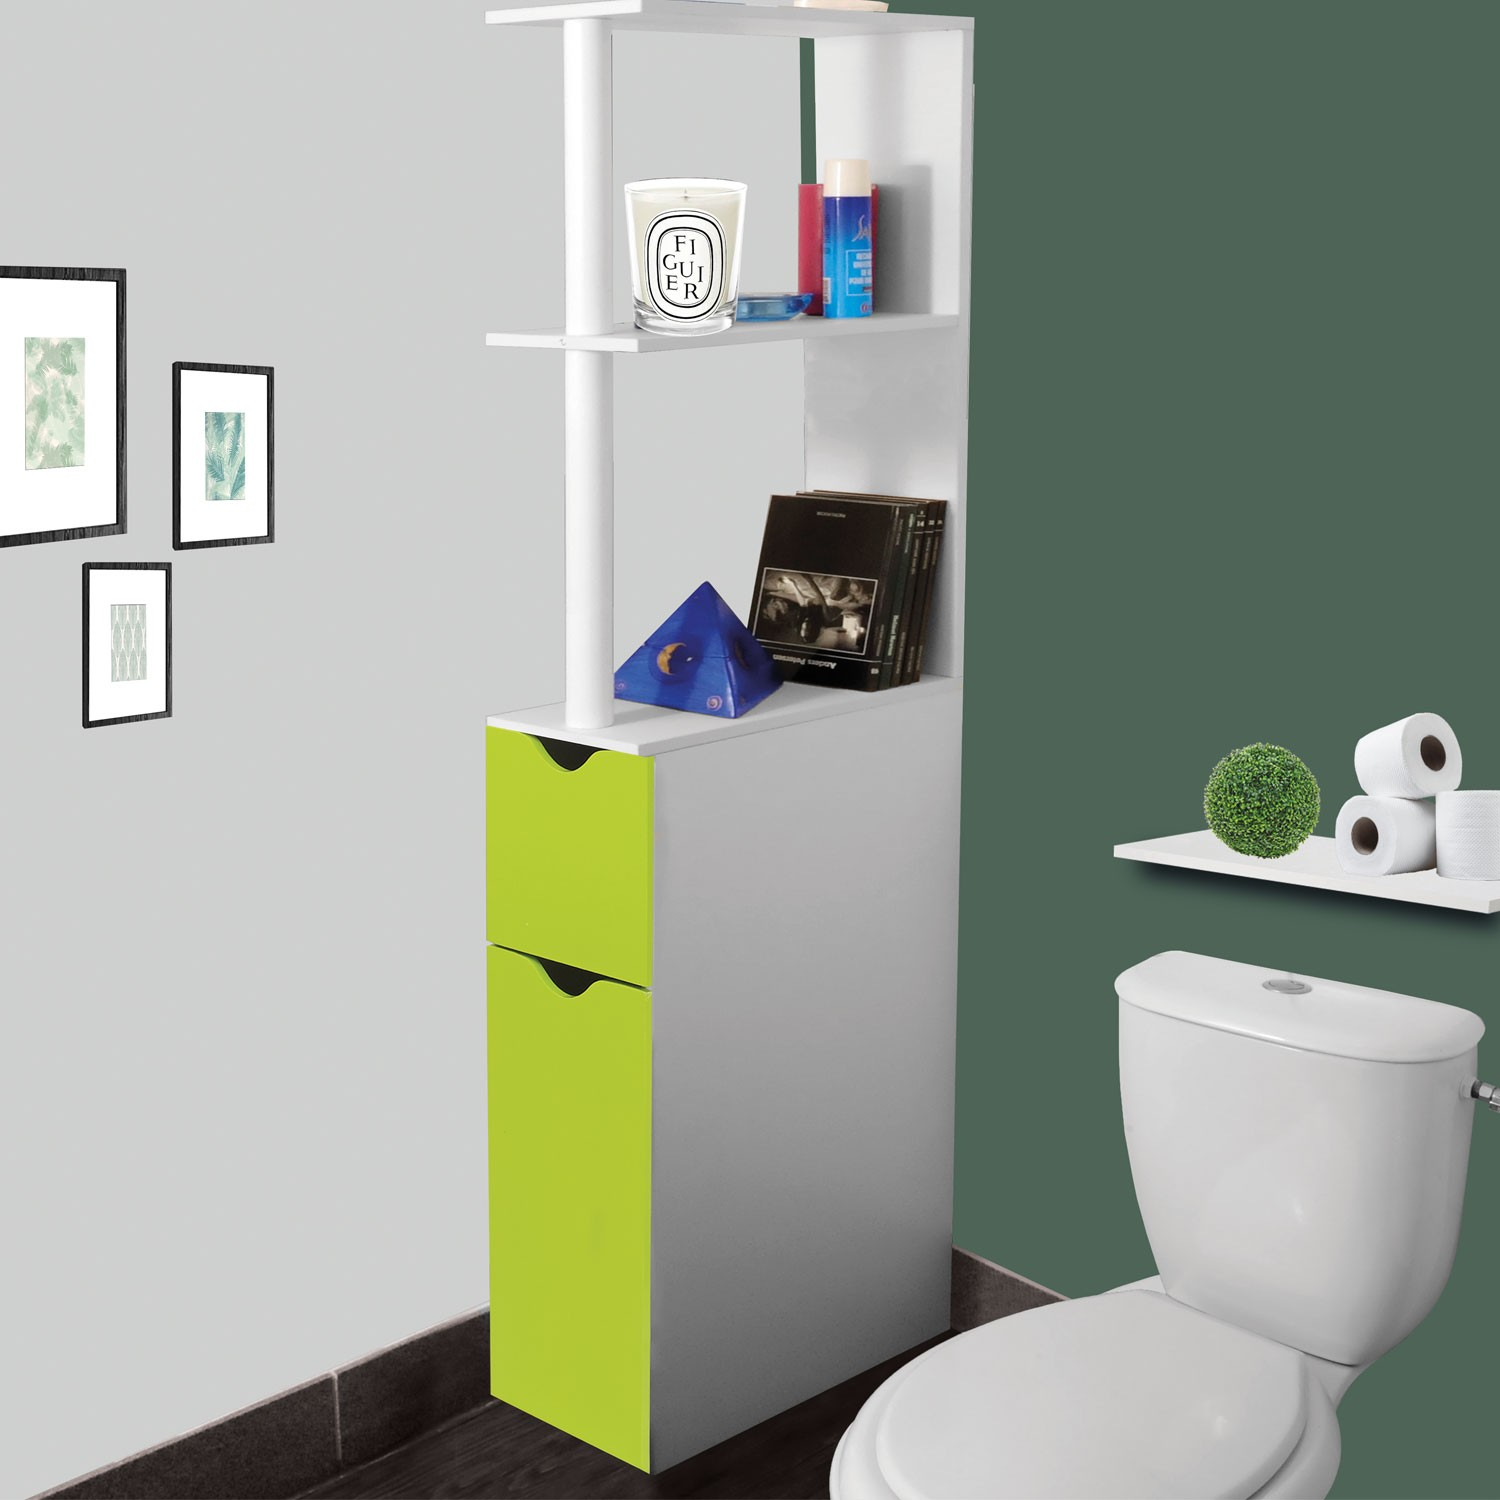 Etagere toilette fashion designs for Meuble pour toilette castorama